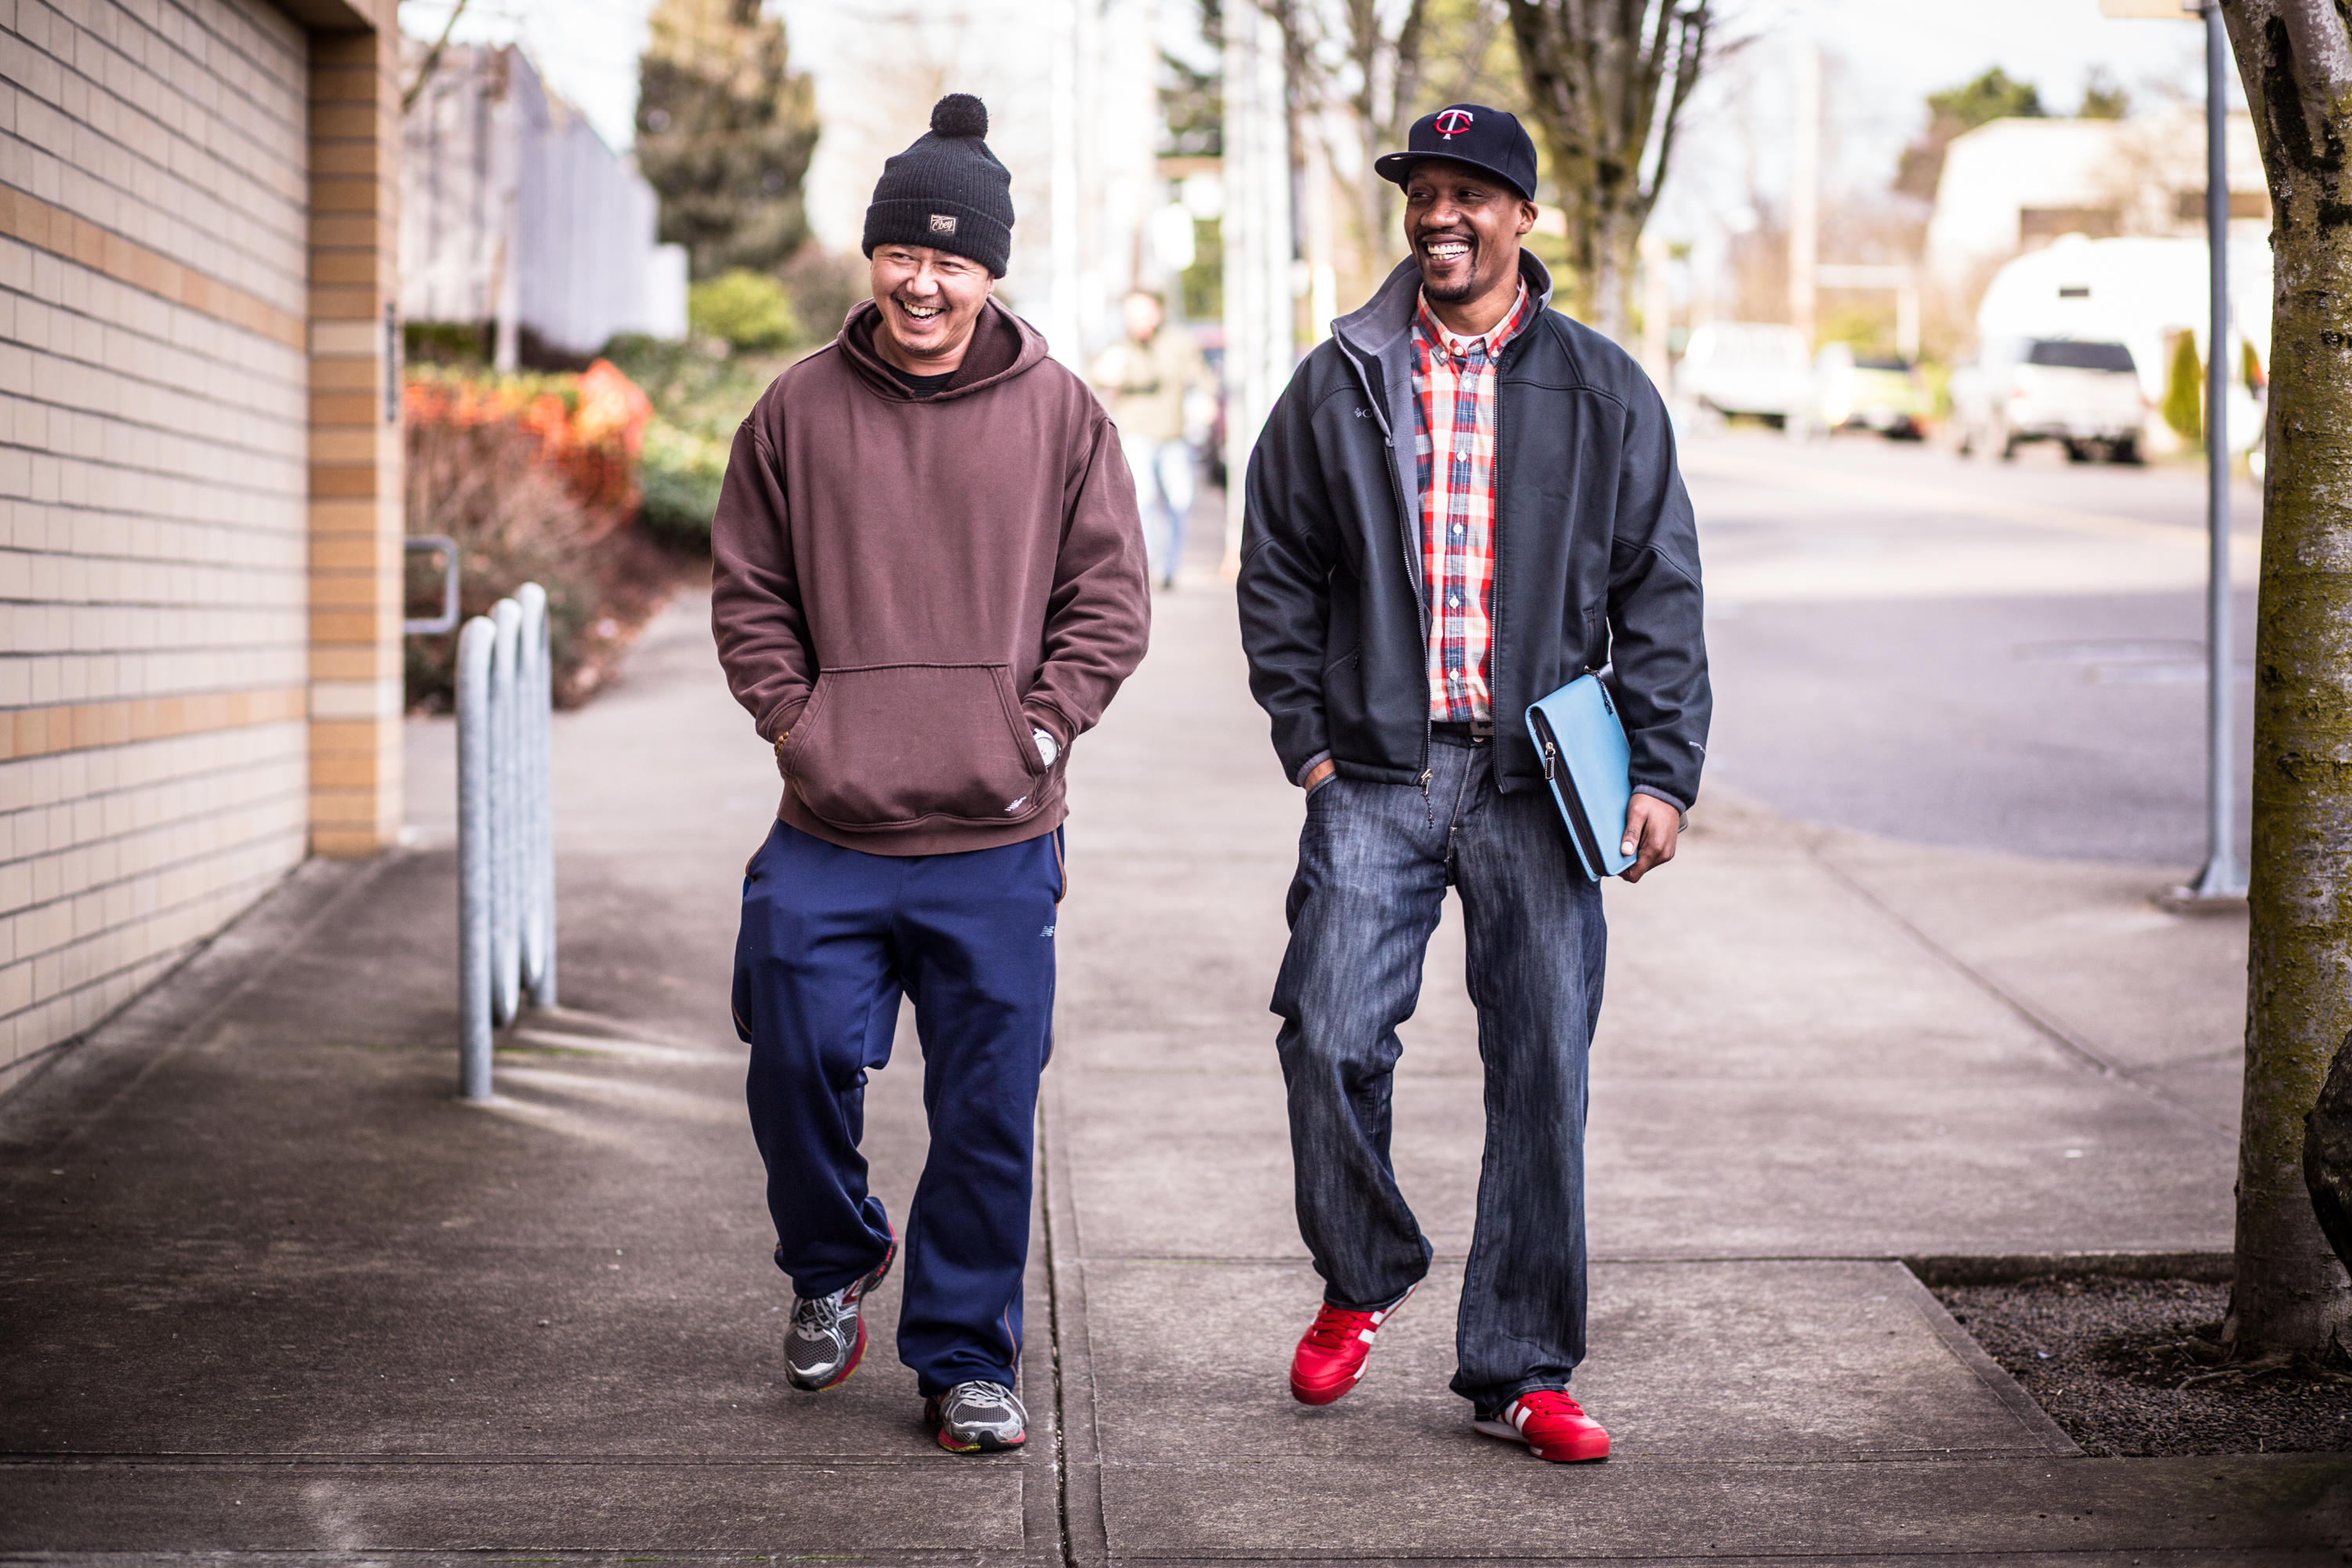 Two men walking down a sidewalk smiling